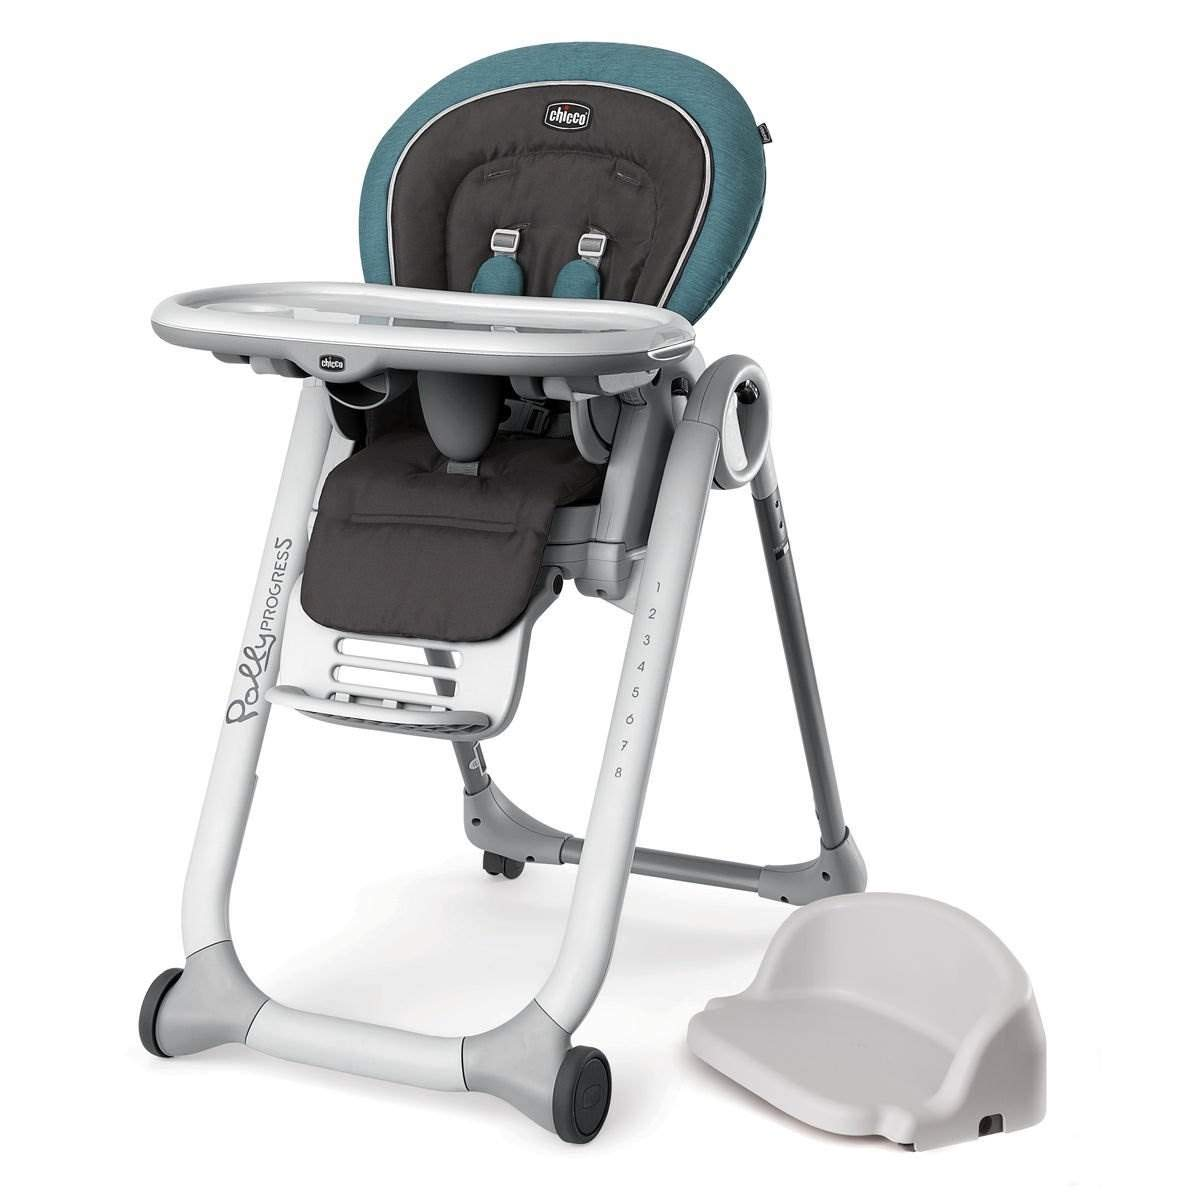 Chicco Progress 5-in-1 Highchair, Calypso by Chicco